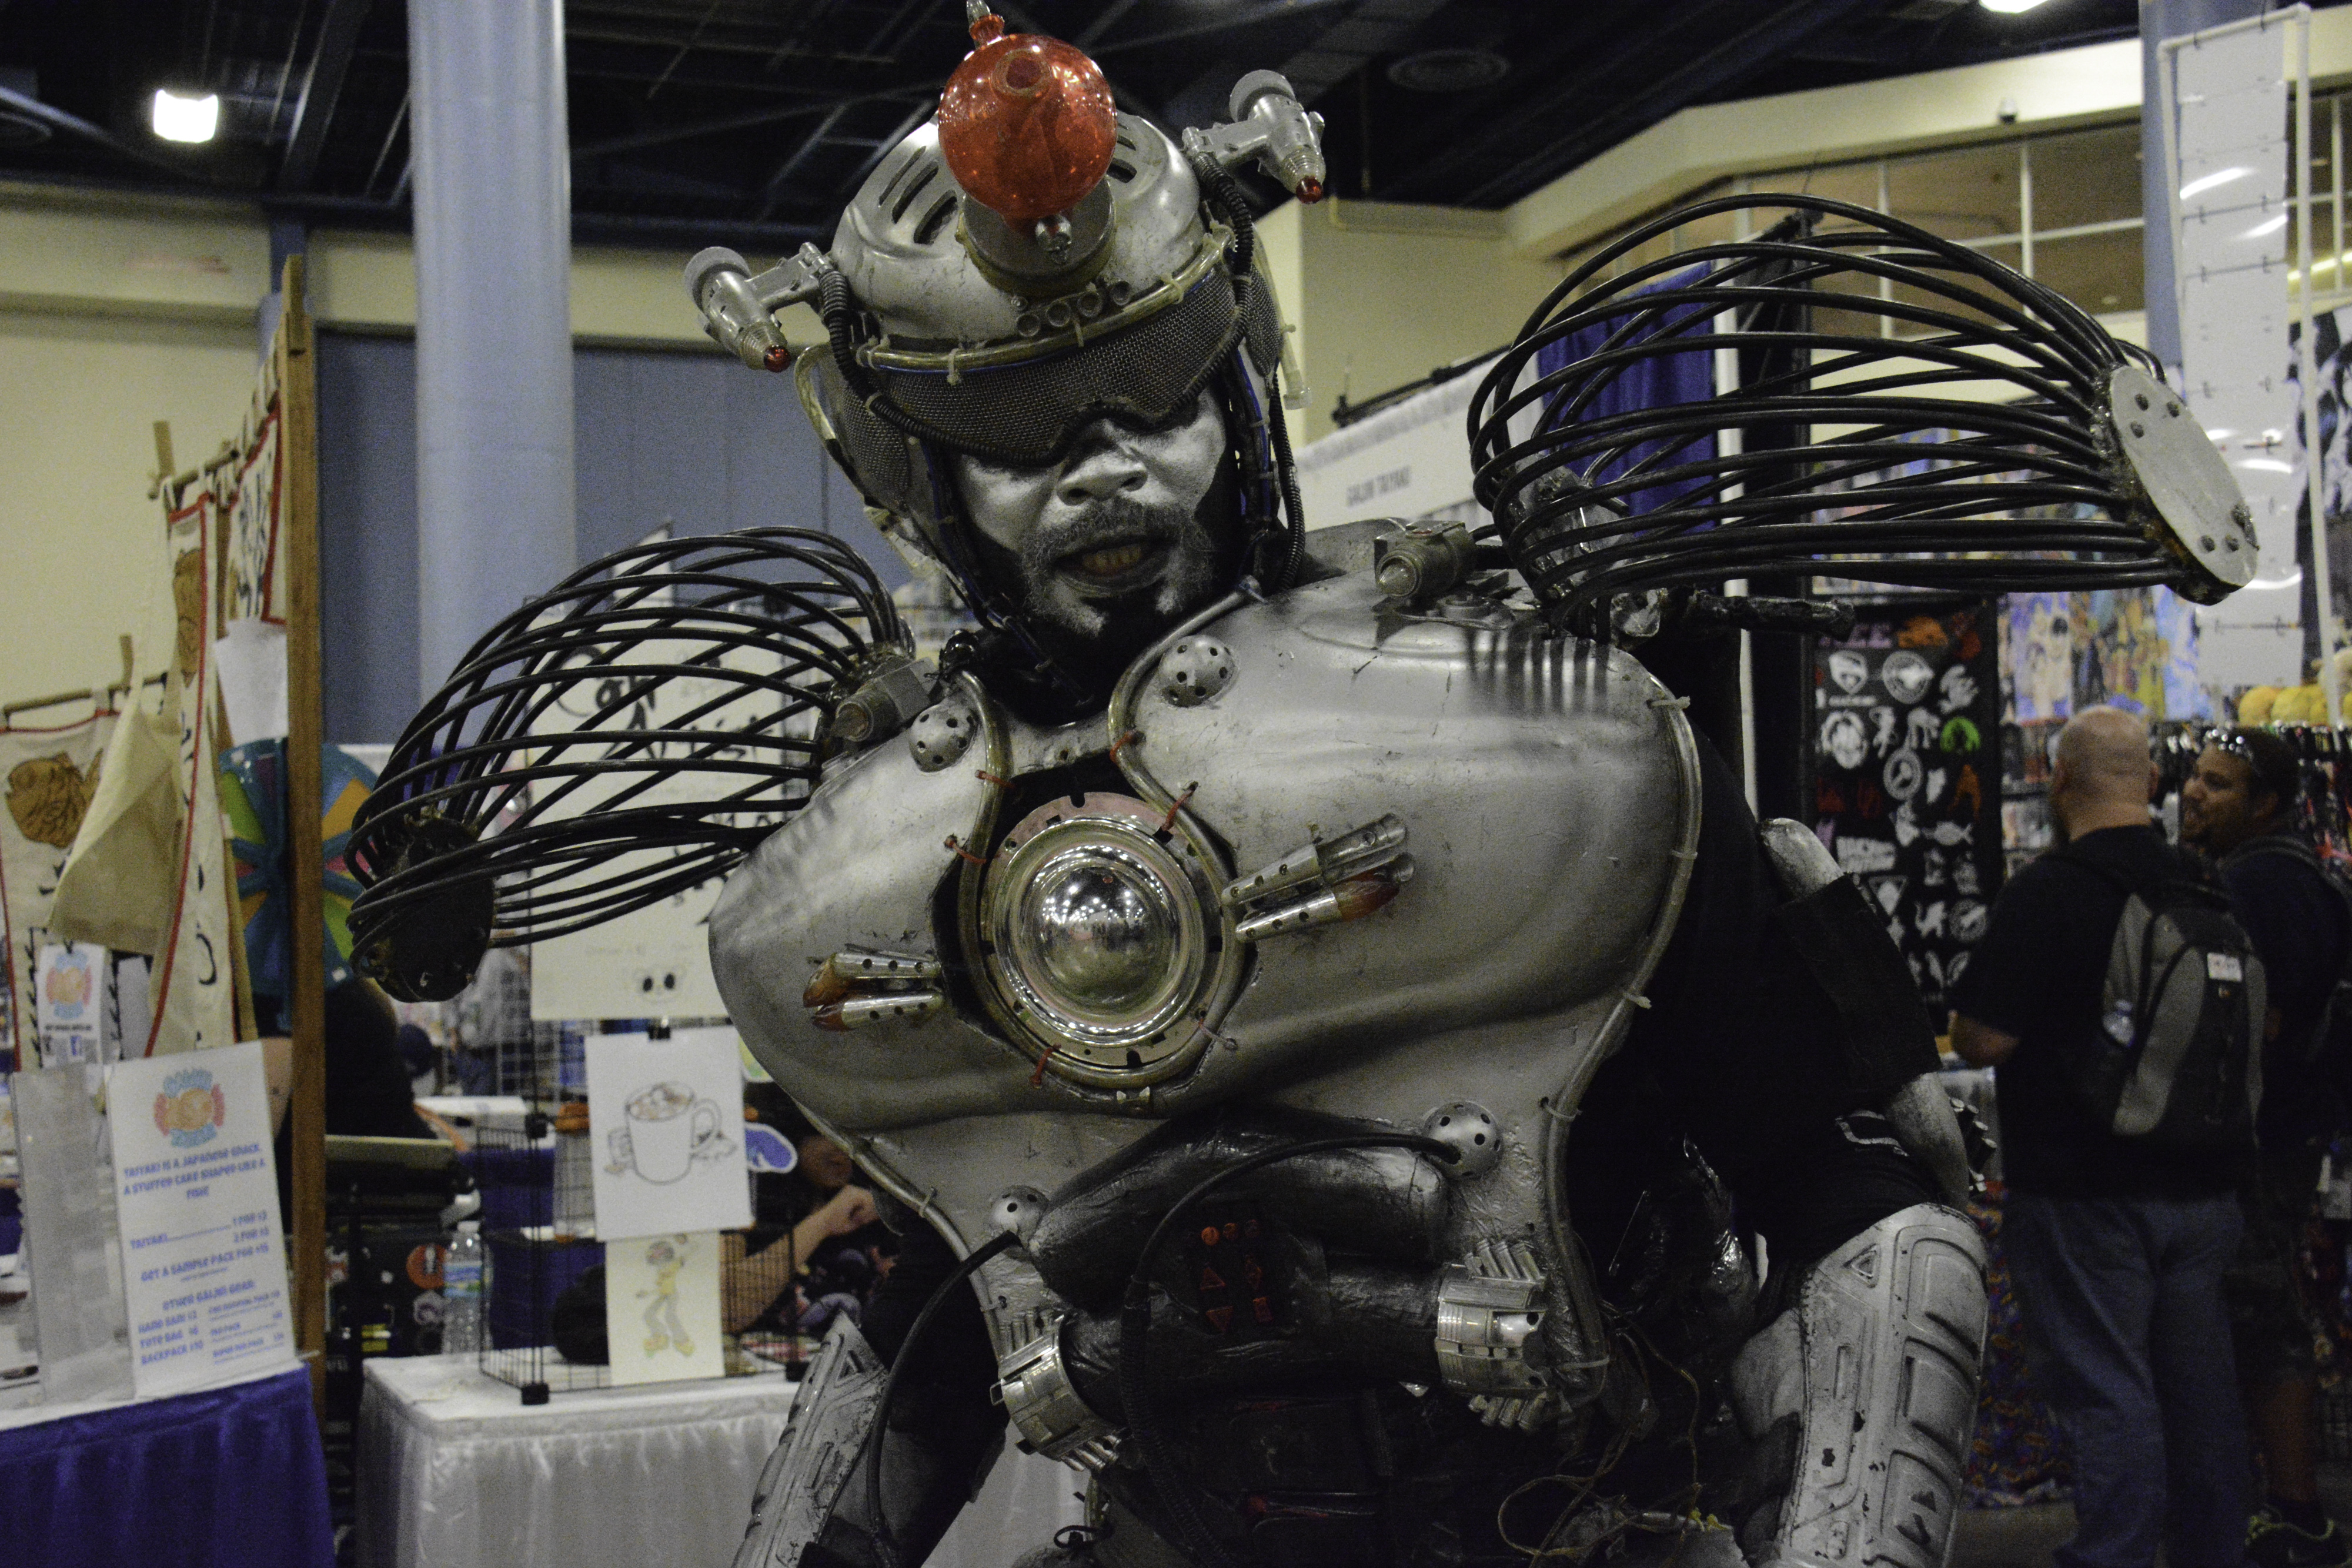 A cosplayer dressed as Strobo from The Killer Robots! Crash and Burn.